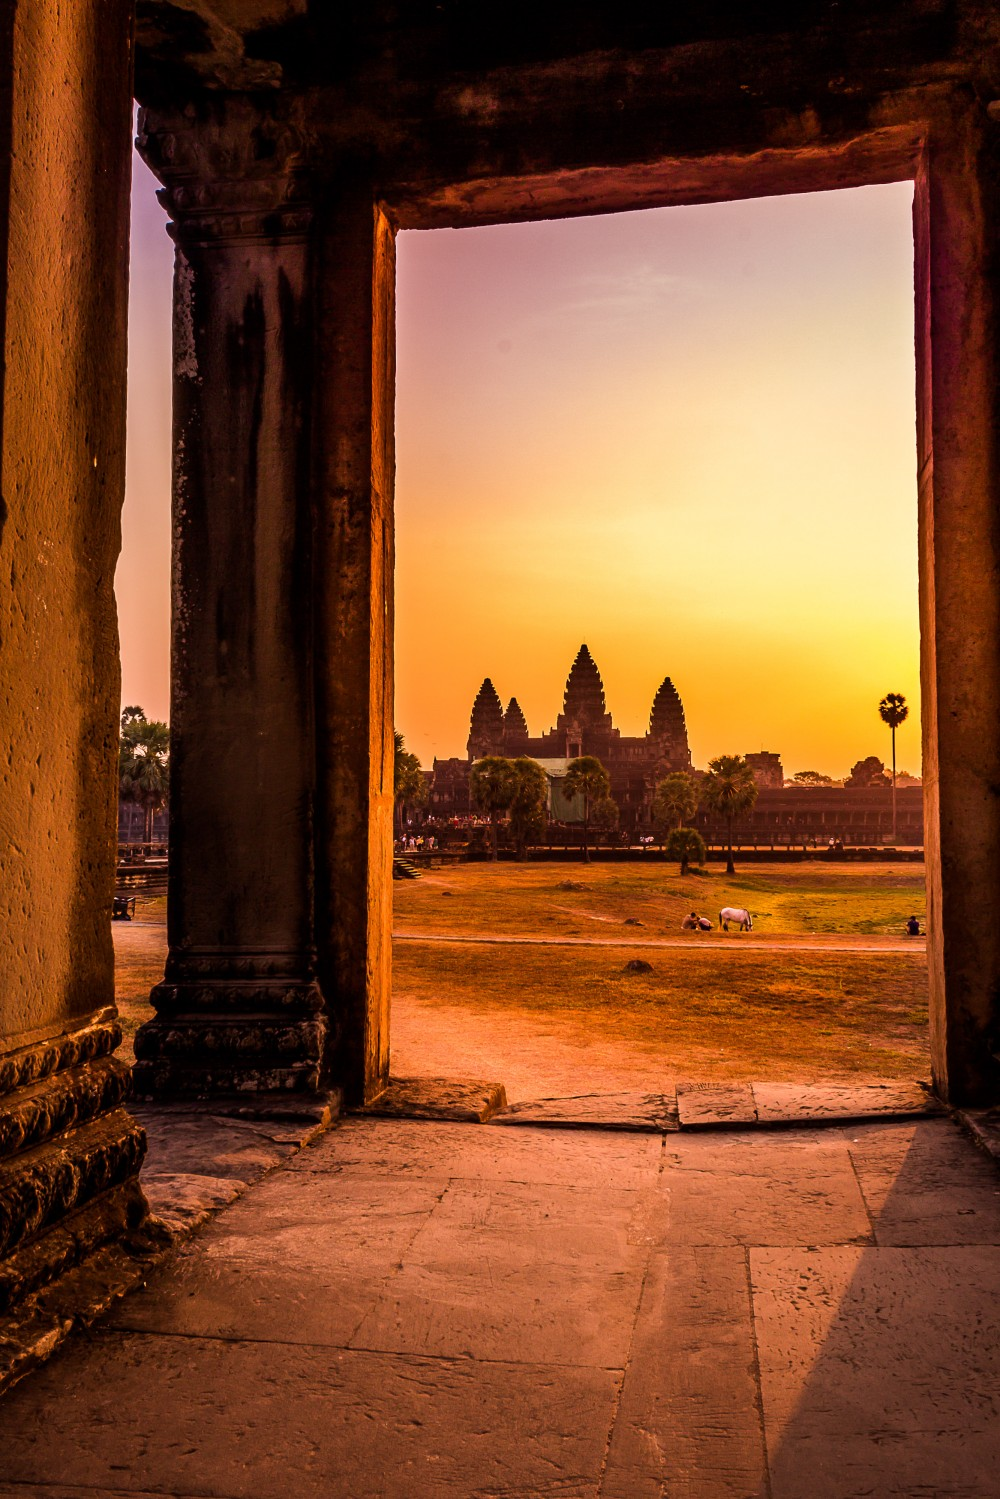 Doorway to Angkor Wat at Sunrise